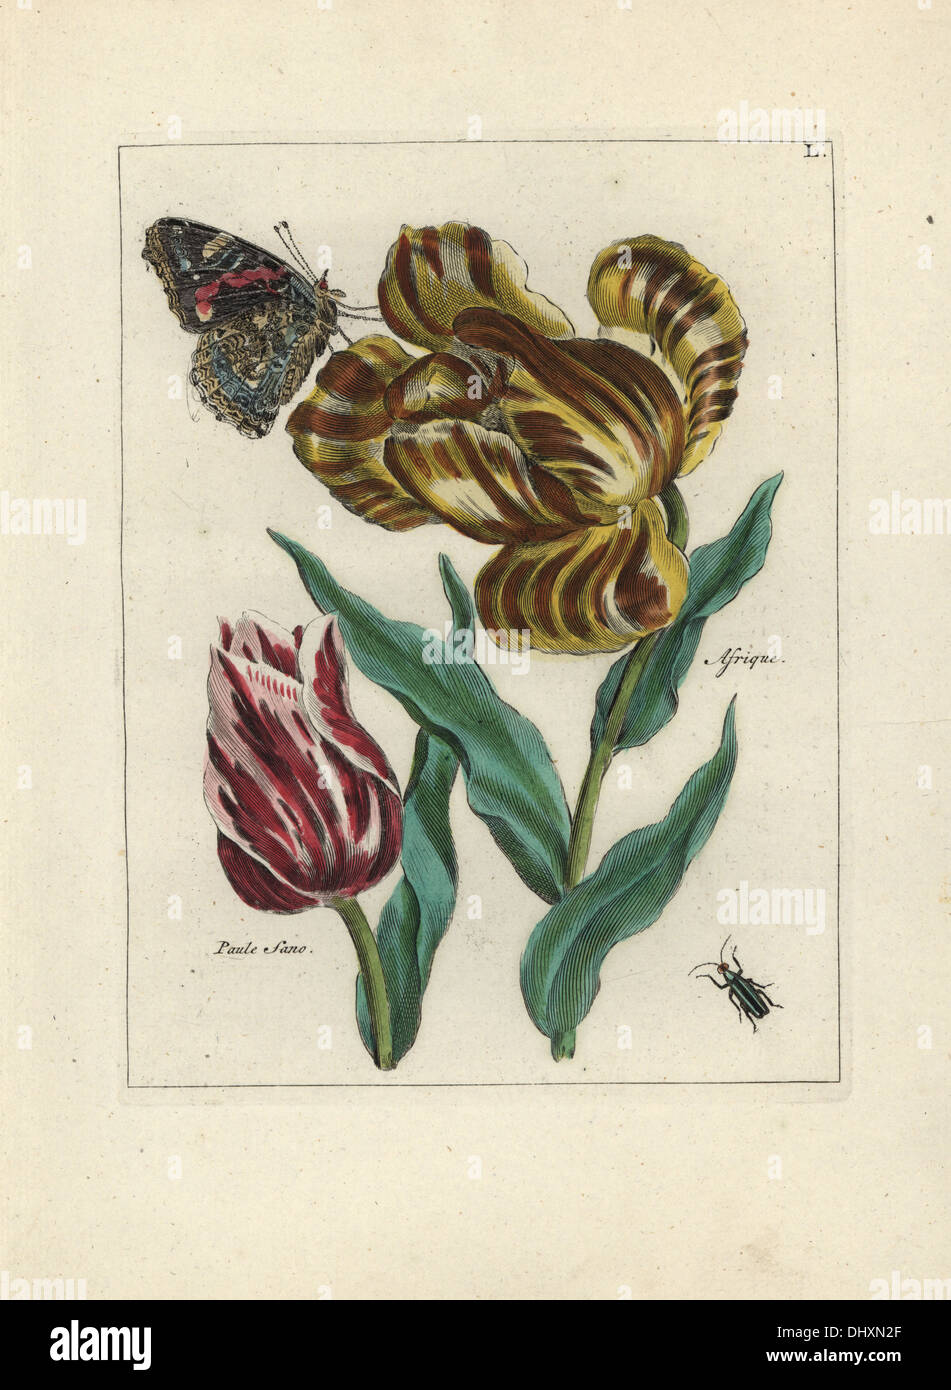 Tulip varieties, Paule Sano and Afrique, Tulipa gesneriana, with butterfly and beetle. - Stock Image